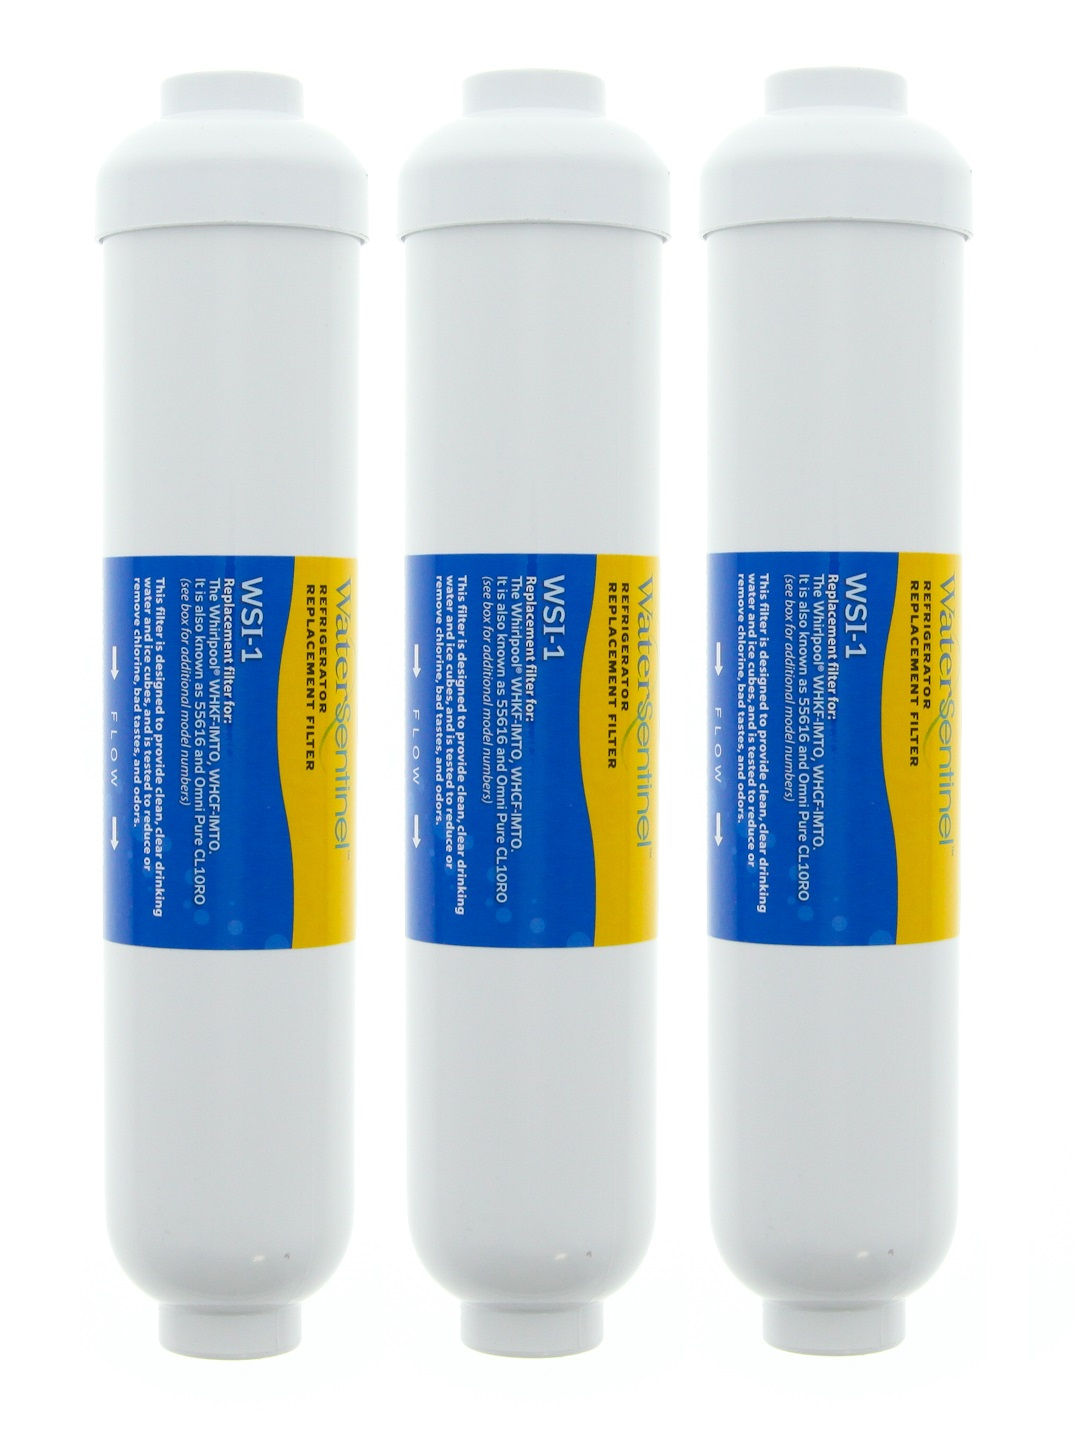 WSI-1 Water Sentinel Refrigerator Water Filter (WHKF-IMCF Compatible) (3-Pack)